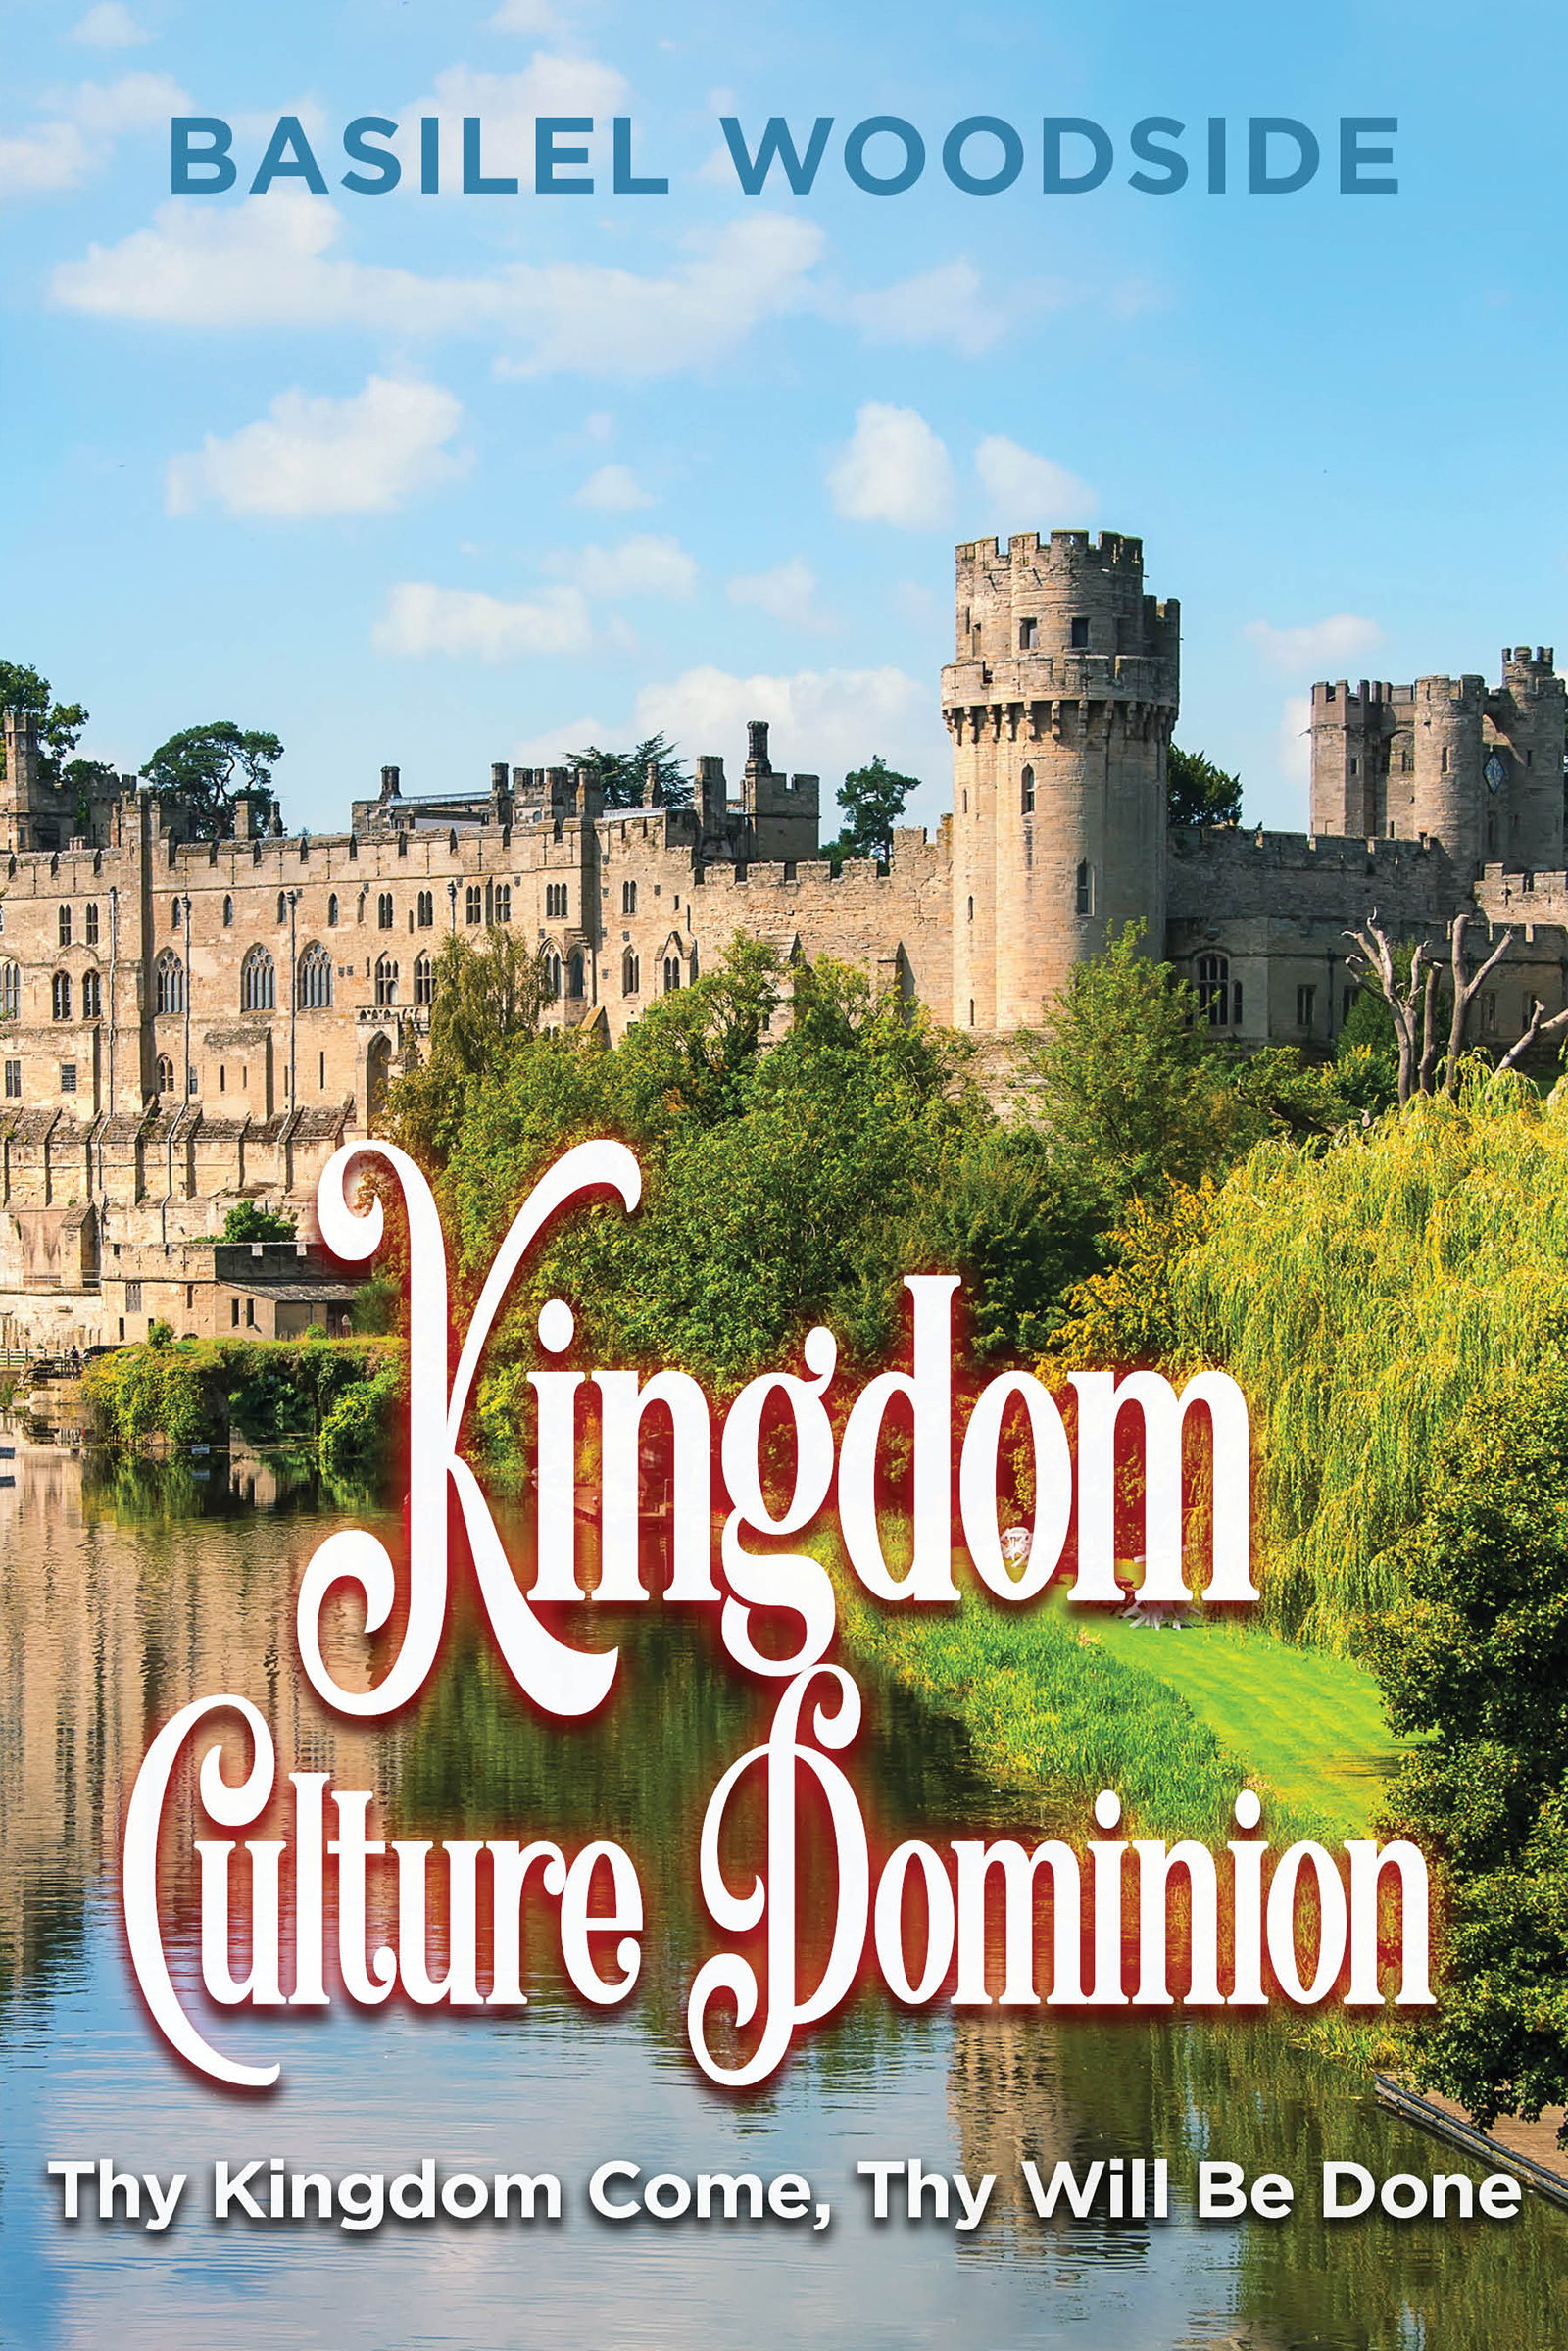 Author Basilel Woodside's 'Kingdom Culture Dominion' Defines True Meaning of Kingdom of God